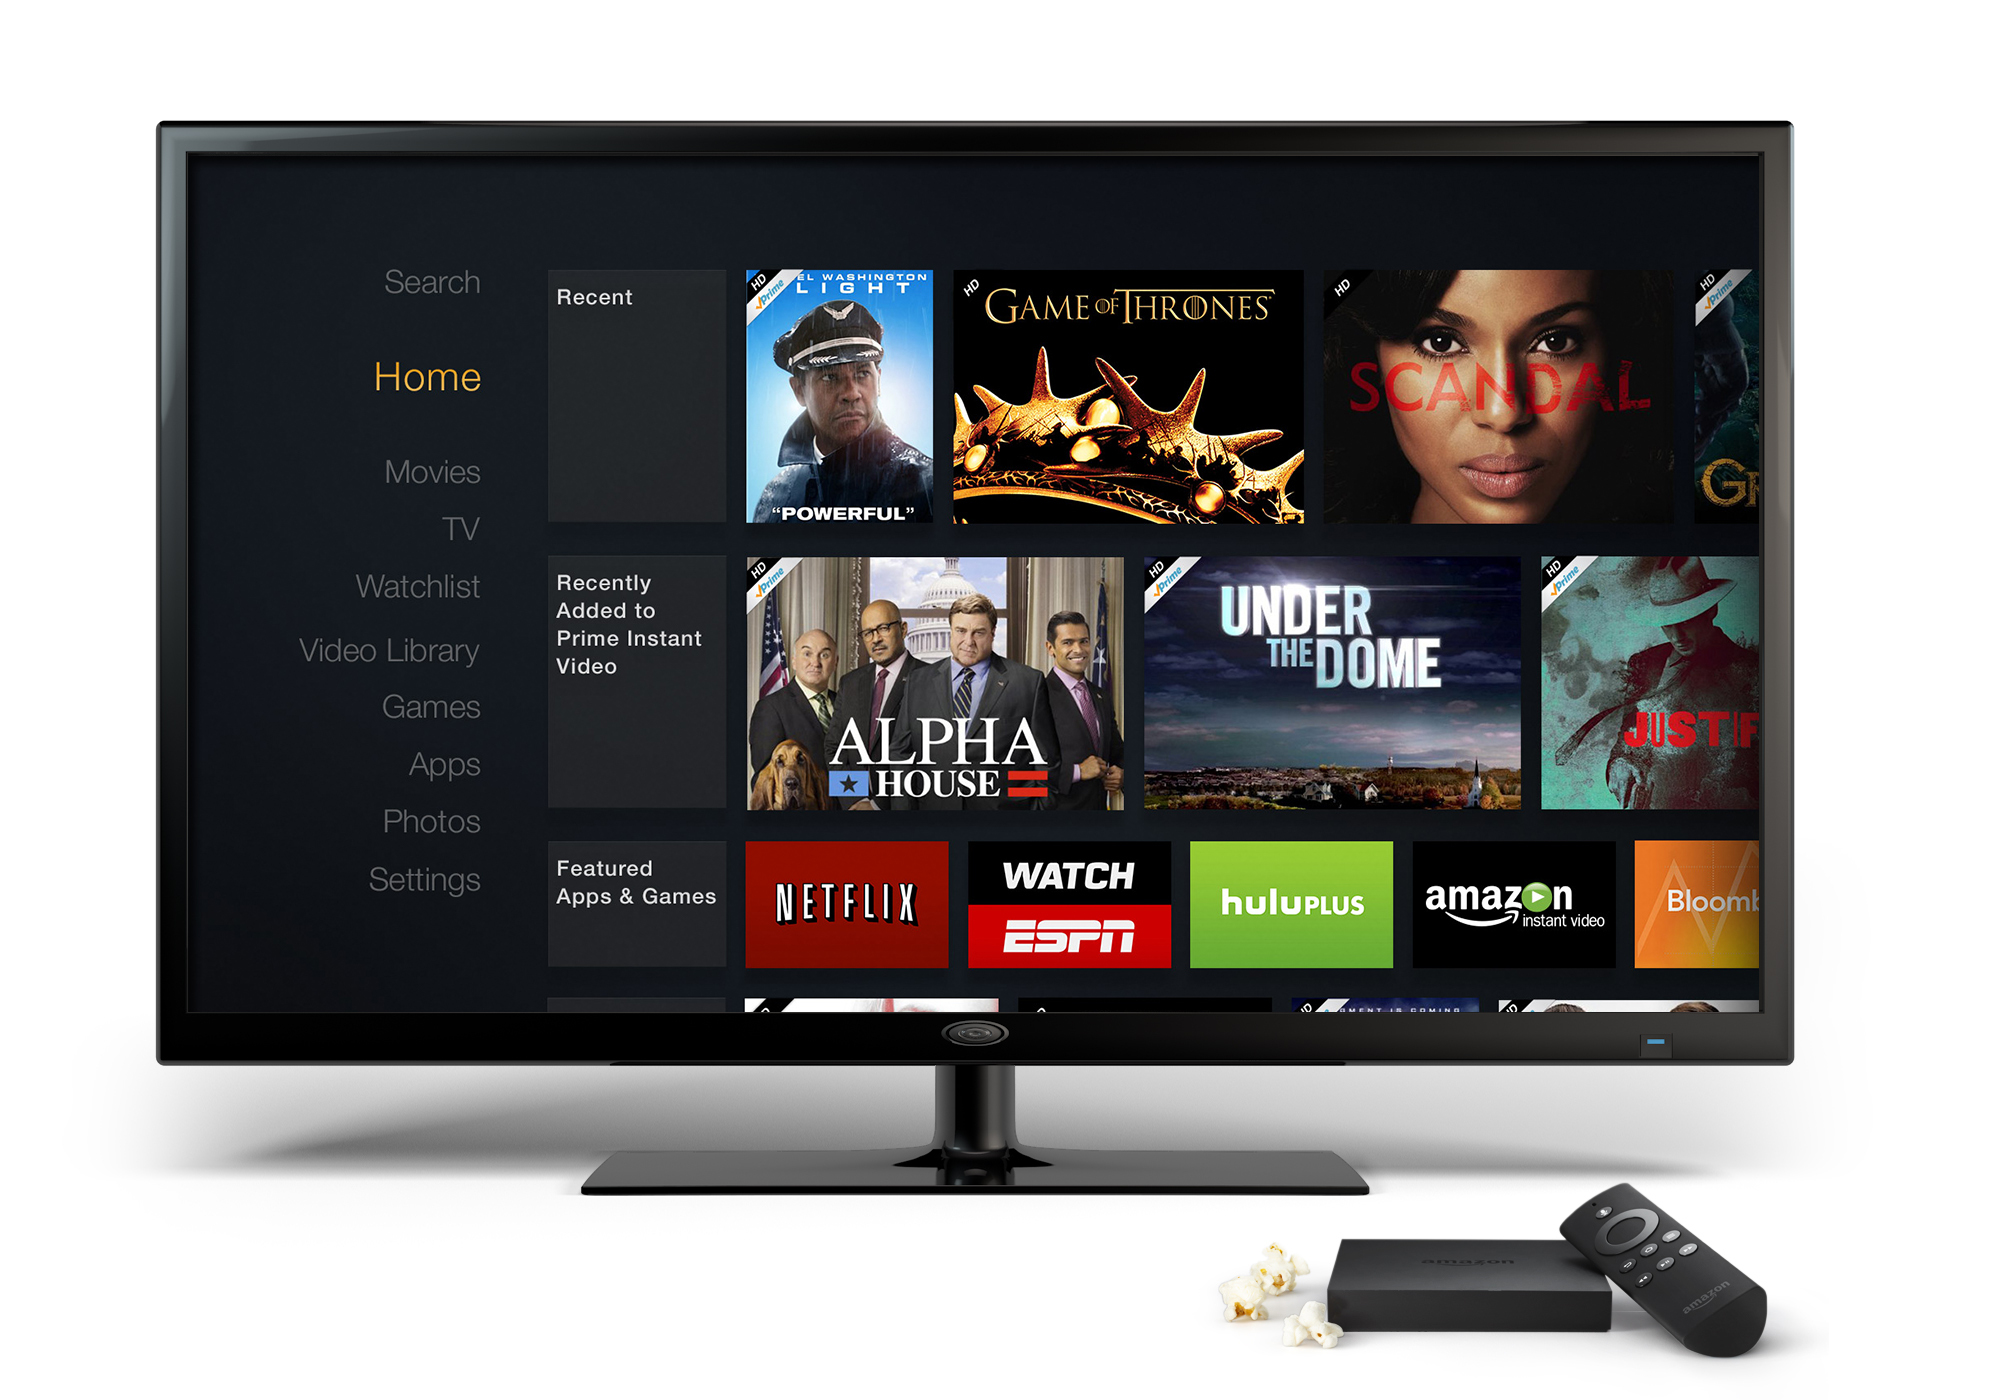 Introducing Amazon Fire Tv The Easiest Way To Watch Netflix Prime